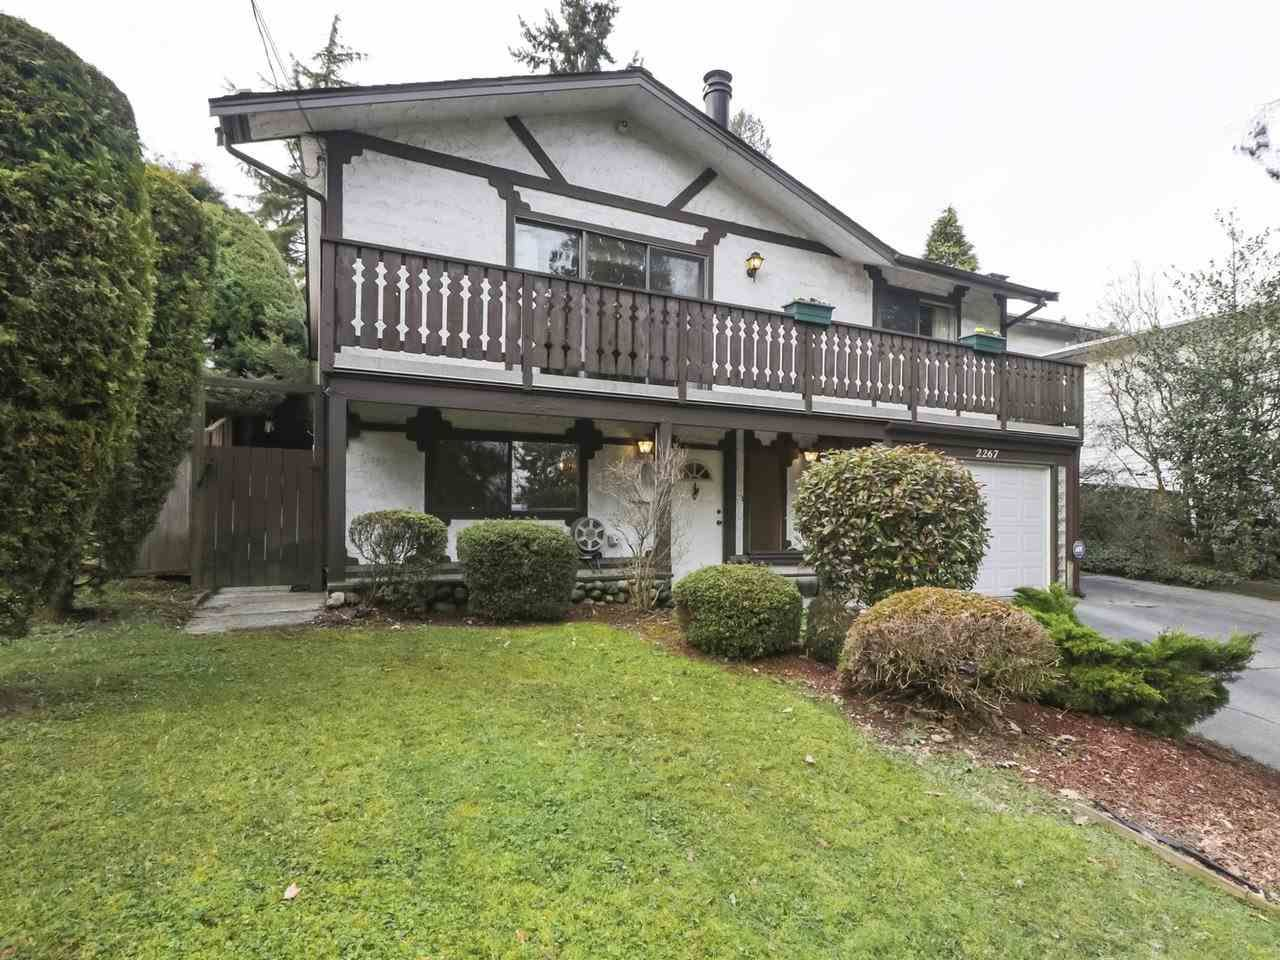 """Main Photo: 2267 CAPE HORN Avenue in Coquitlam: Cape Horn House for sale in """"CAPE HORN"""" : MLS®# R2439351"""